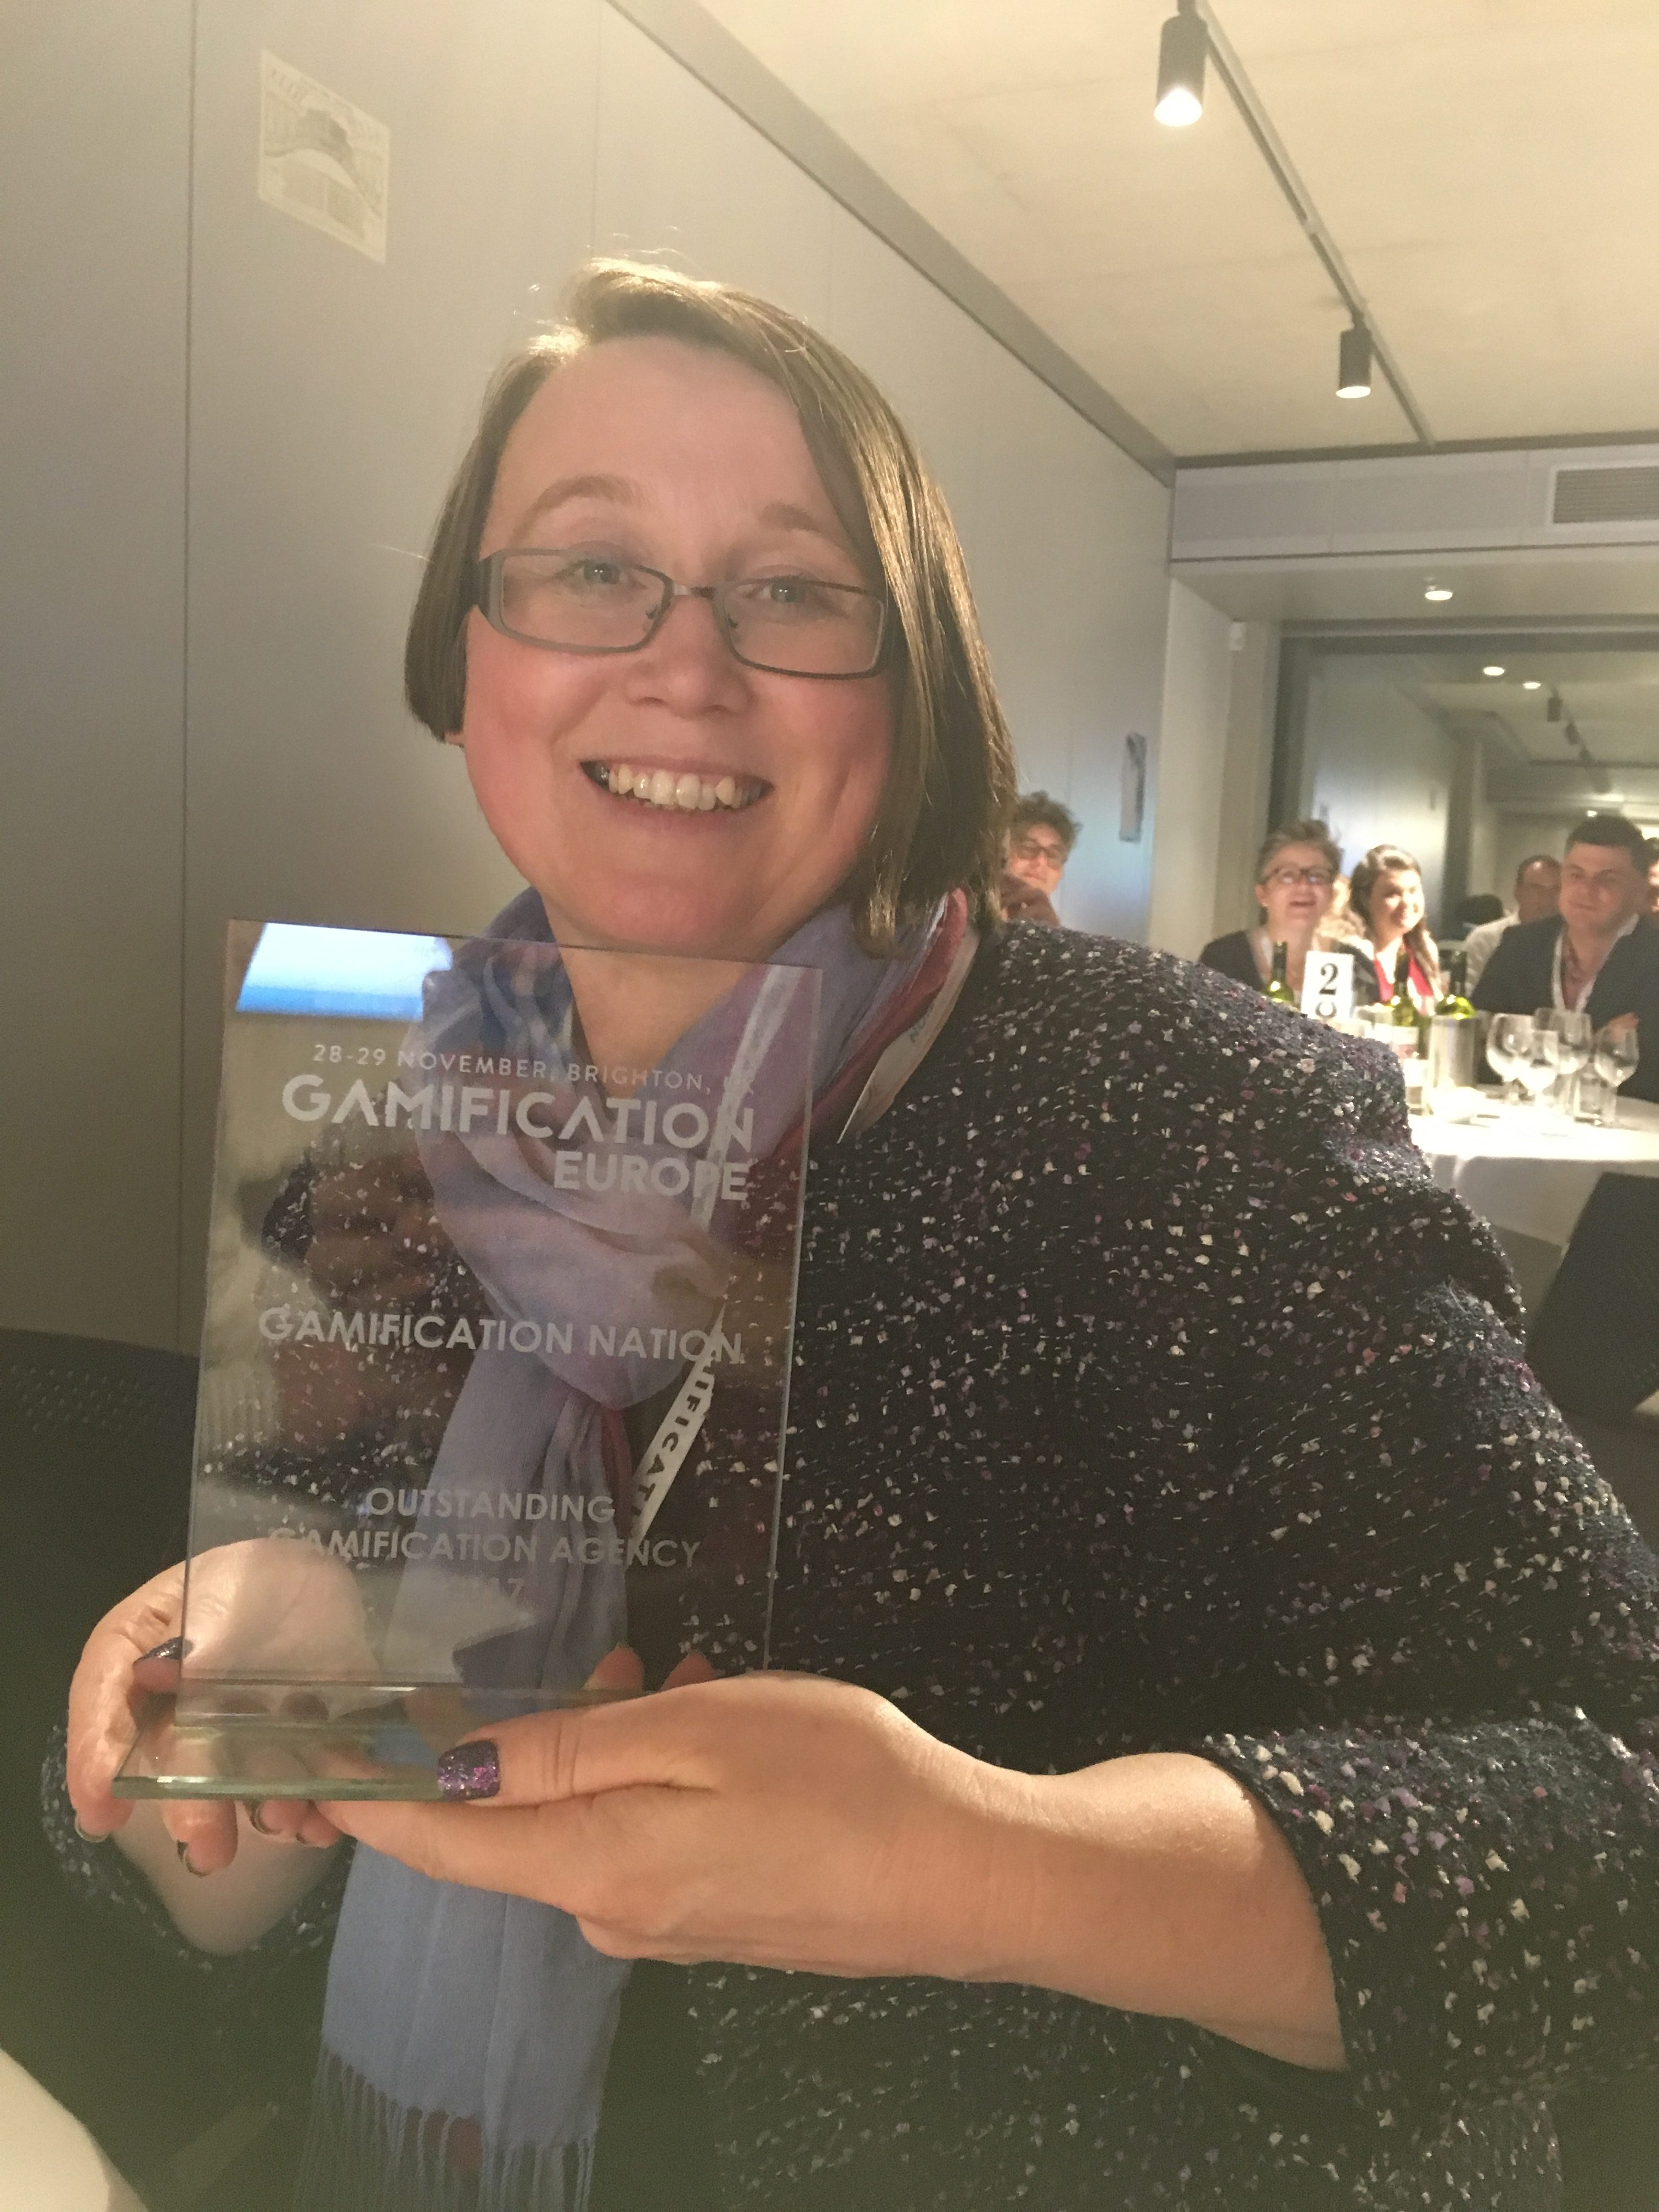 Outstanding Gamification Agency Award winner 2017